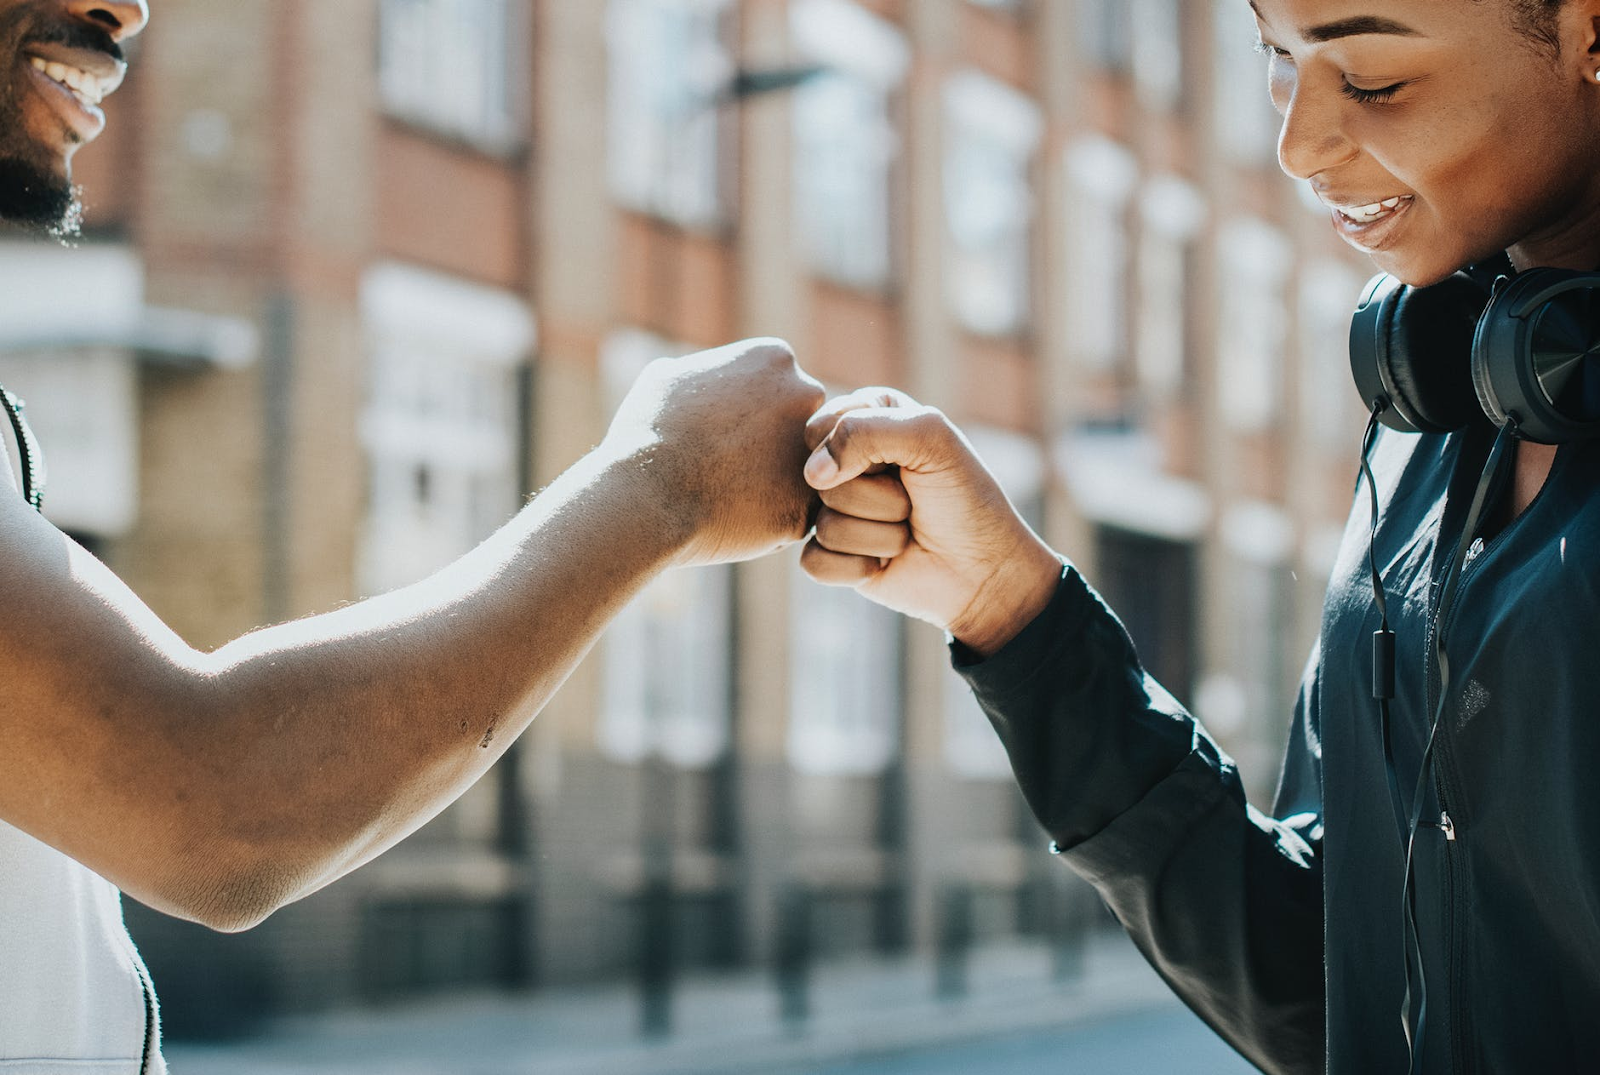 fist bump between a woman and a man